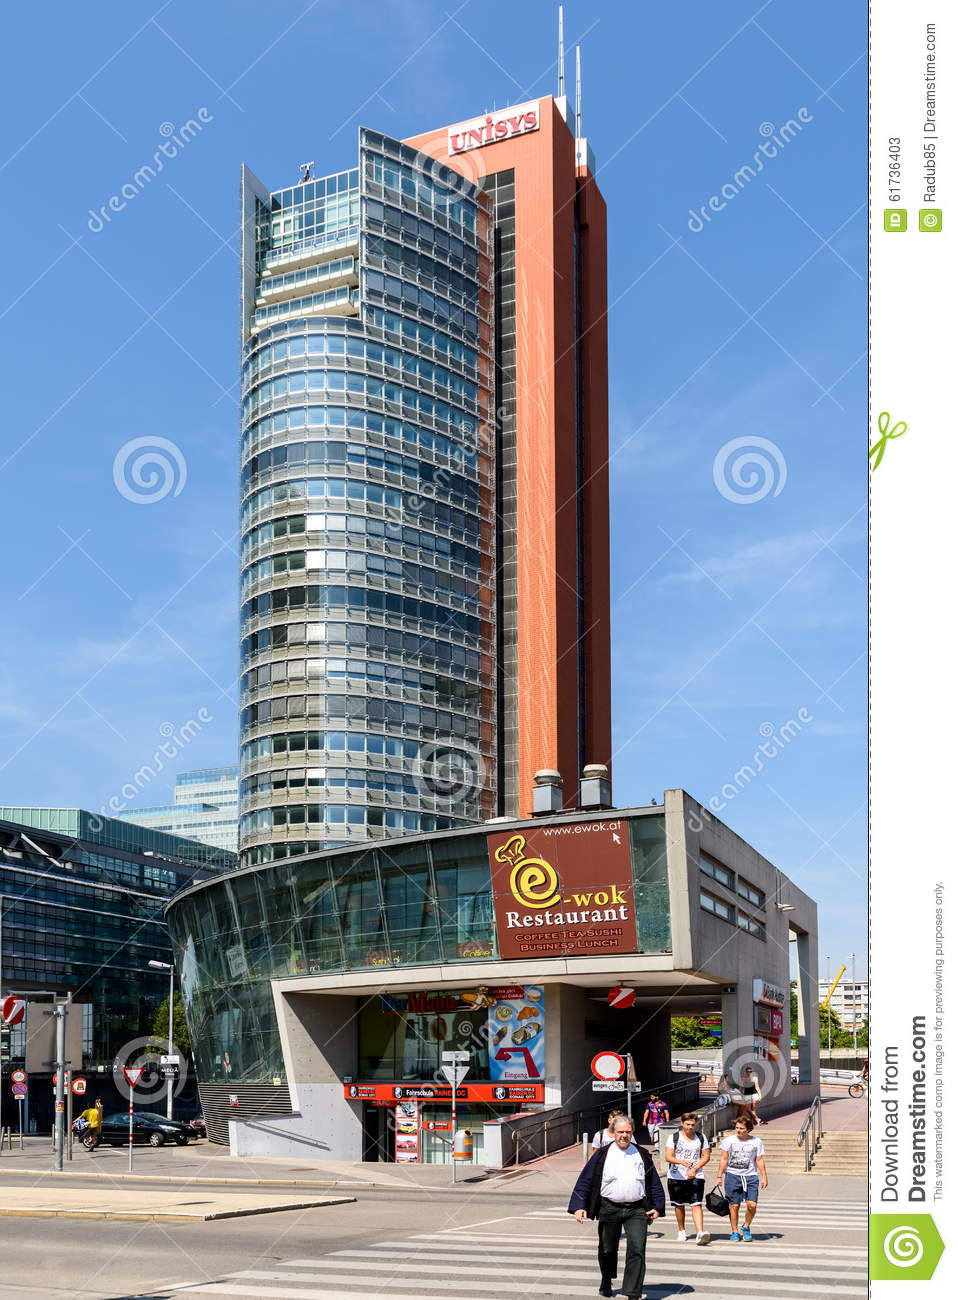 Unisys tower skyscraper in vienna editorial stock photo image of download unisys tower skyscraper in vienna editorial stock photo image of information contemporary stopboris Image collections